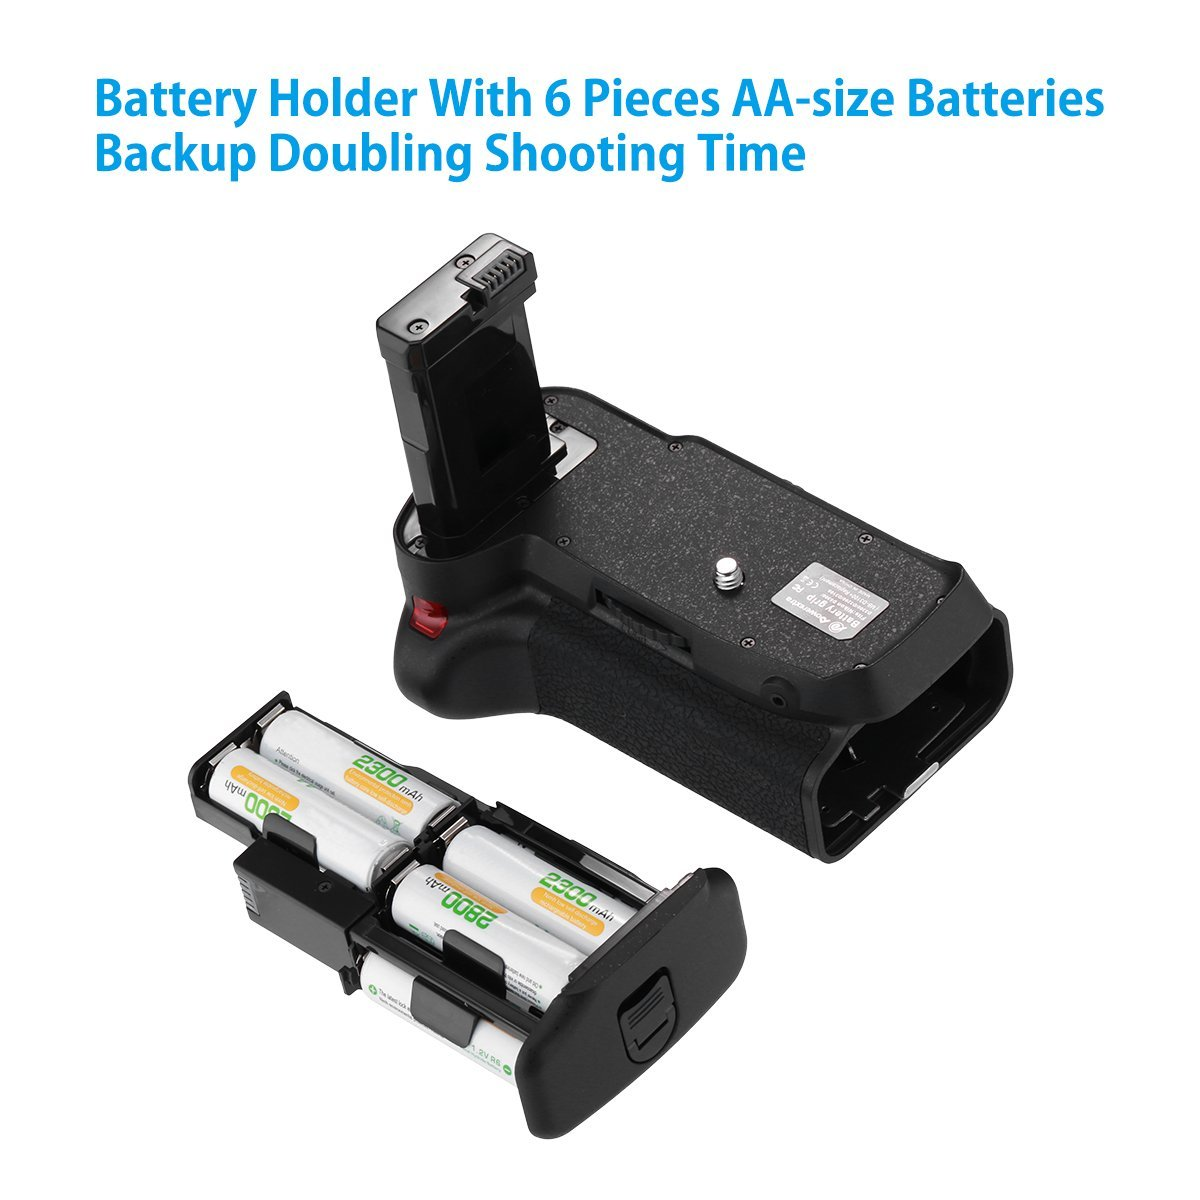 Powerextra Battery Grip With Infrared Remote Control 1500mah En Infra Red For Nikon Camera 61kzecsqjxl Sl1200